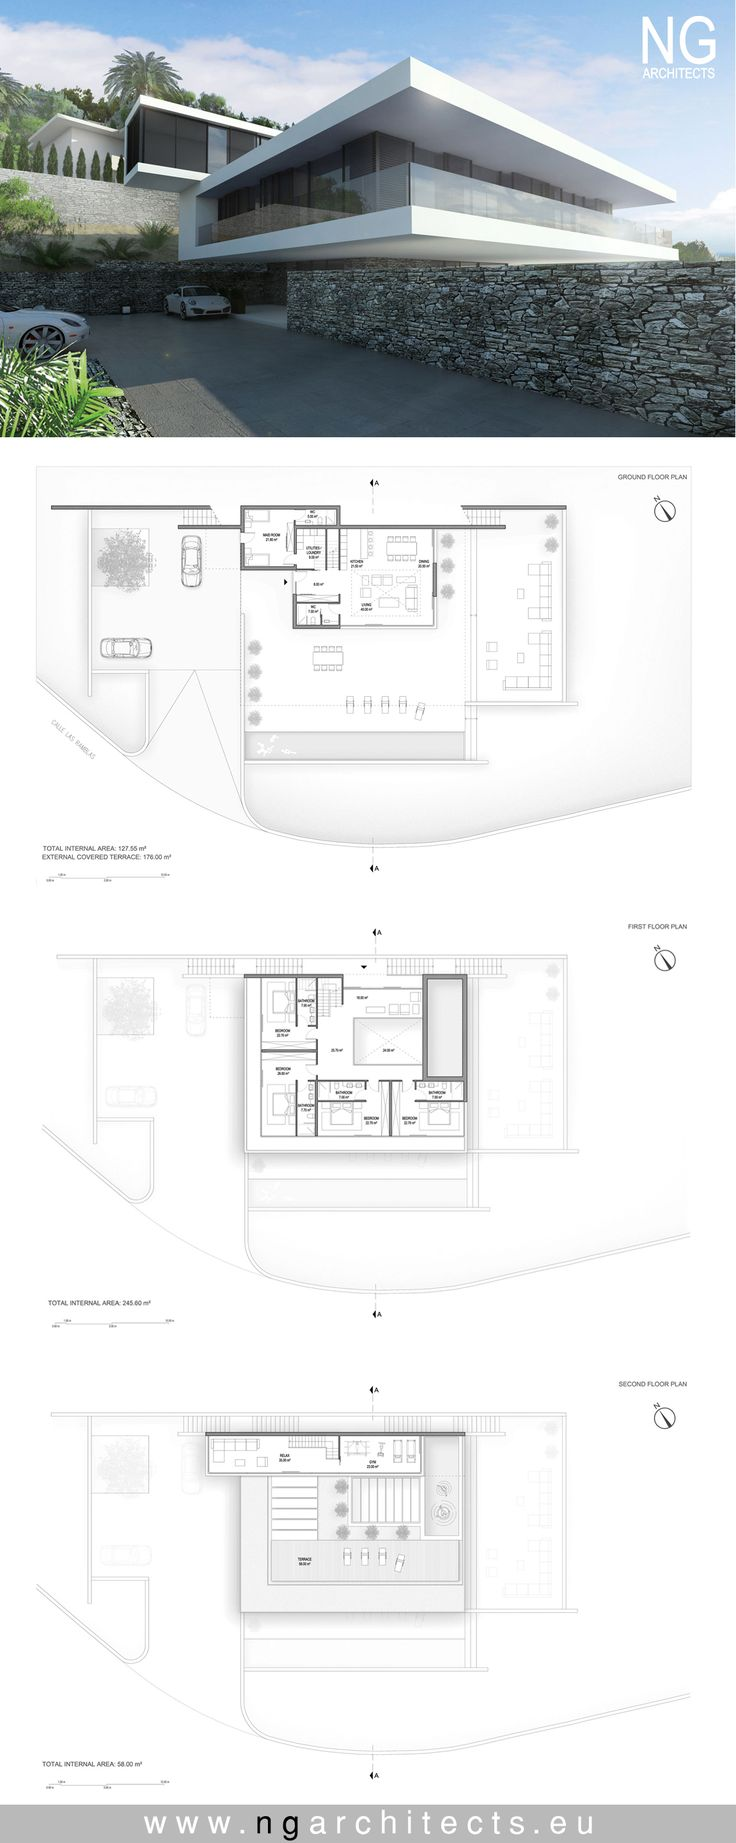 modern house plan Villa Ocean designed by NG architects www.ngarchitects.eu